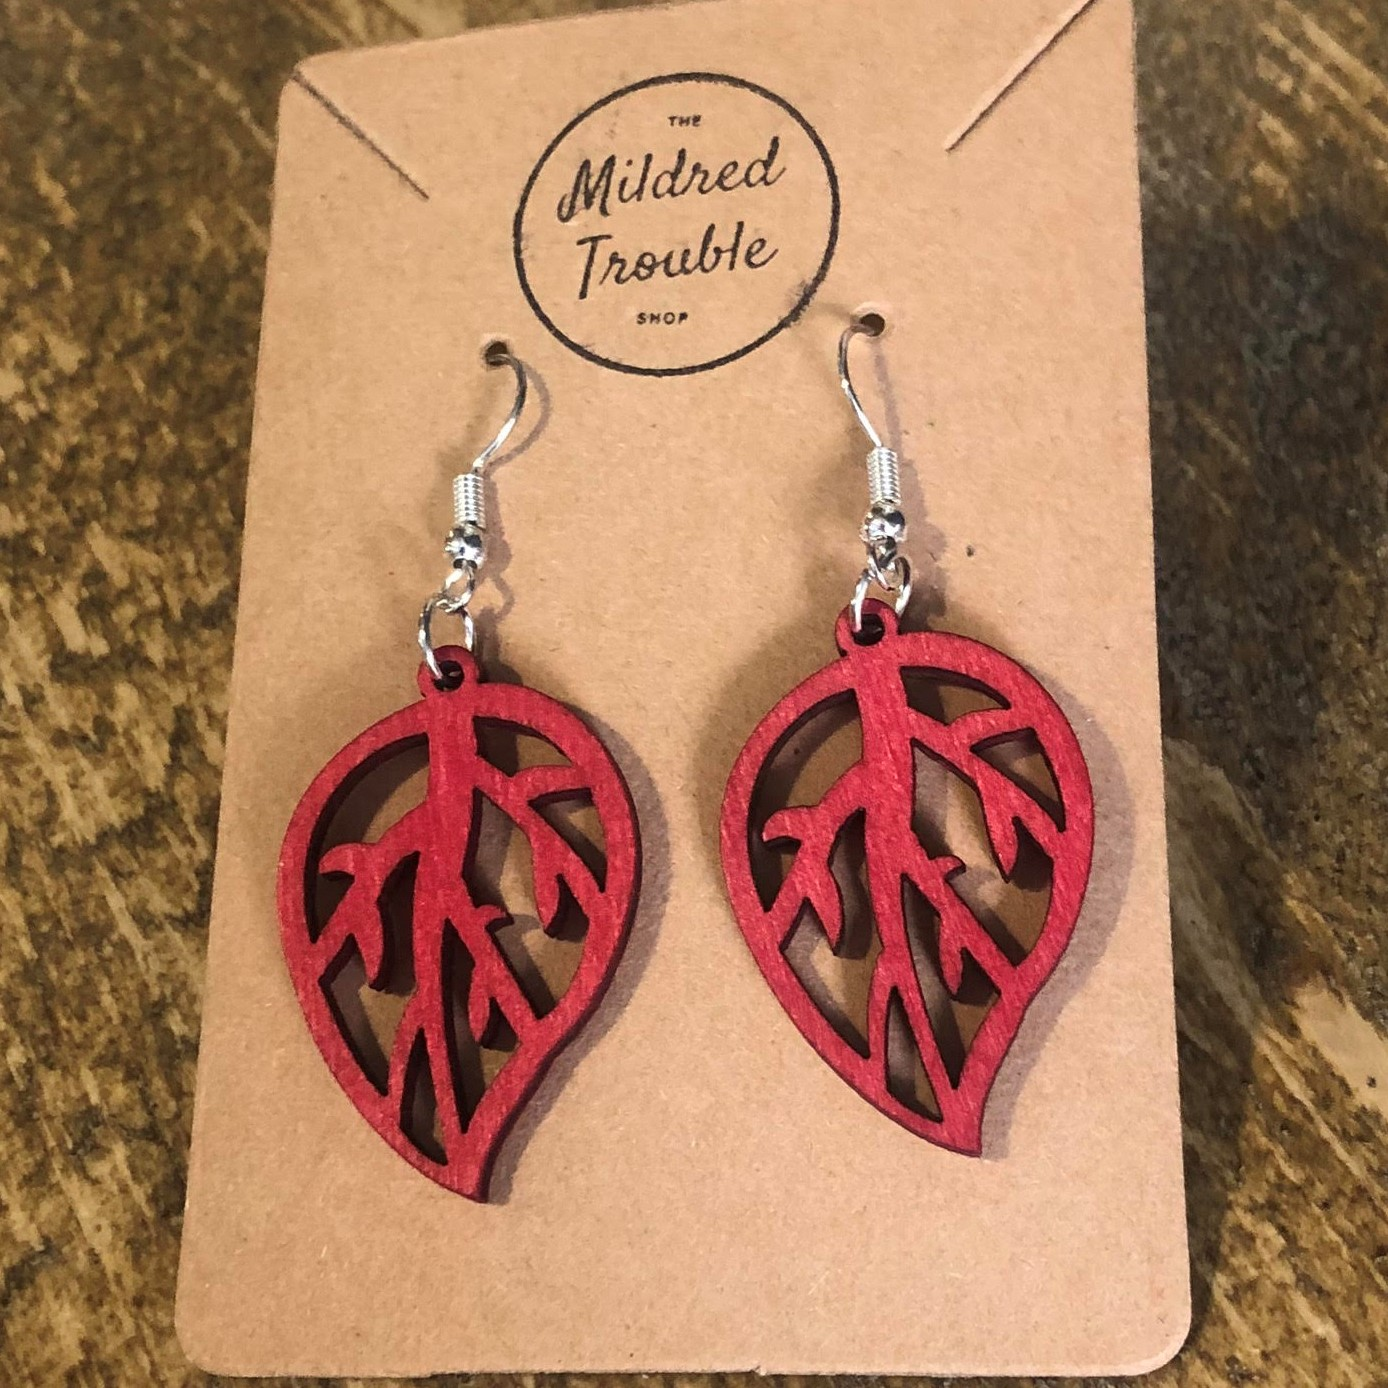 Earrings by Mildred Trouble